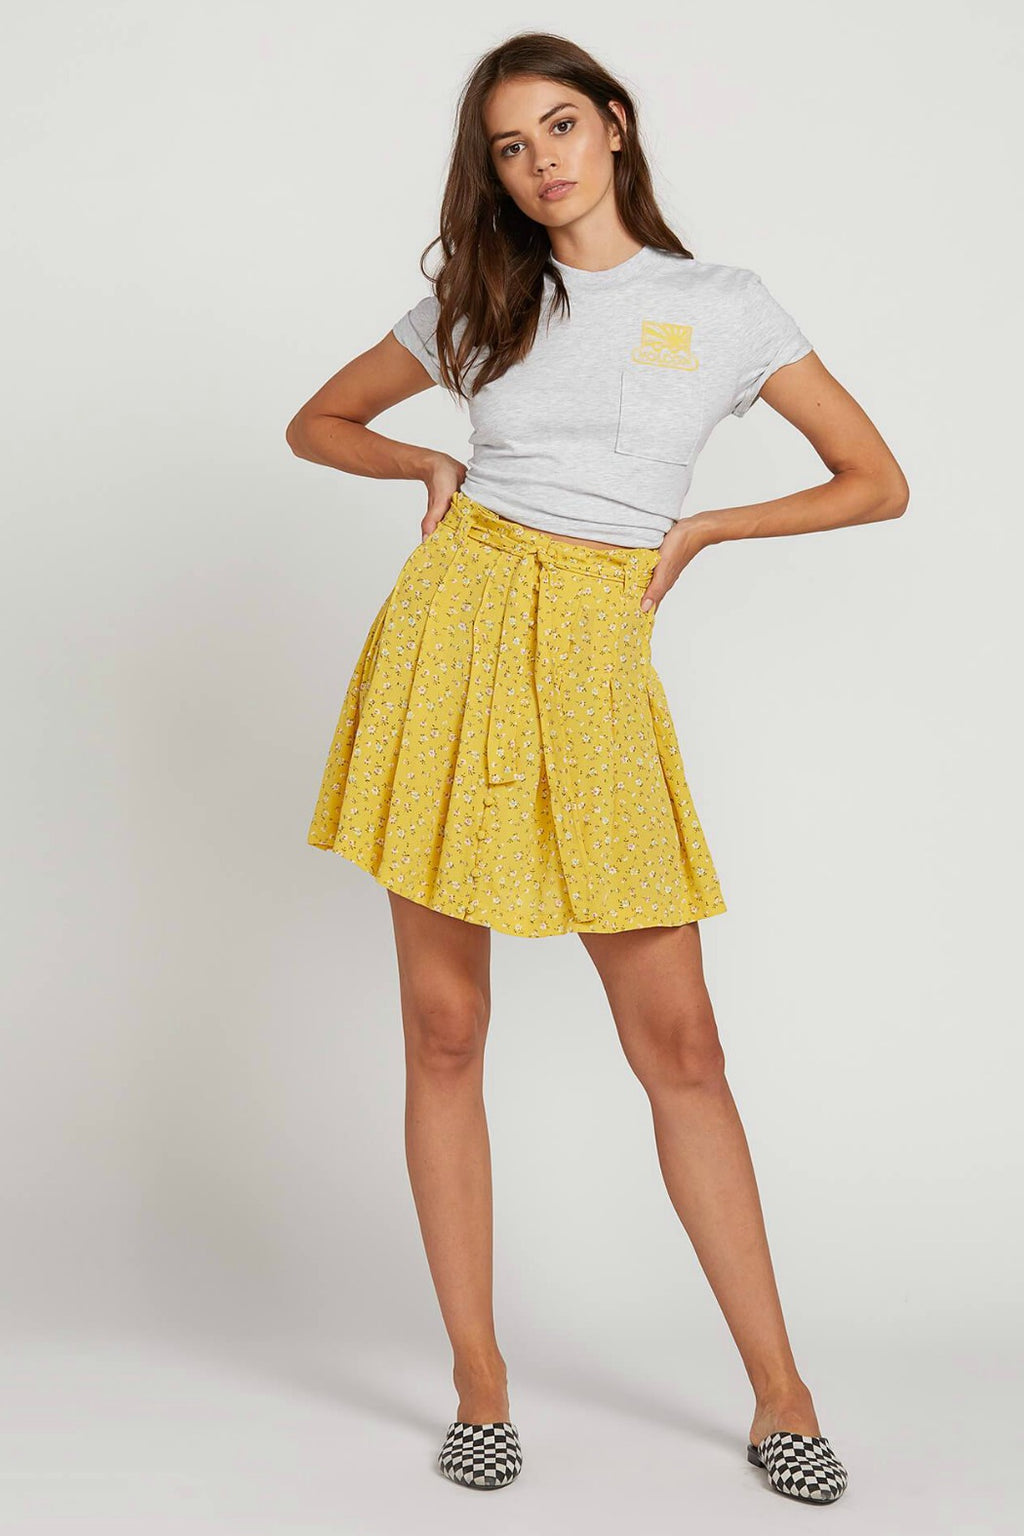 Volcom Hey Bud Skirt in Citron